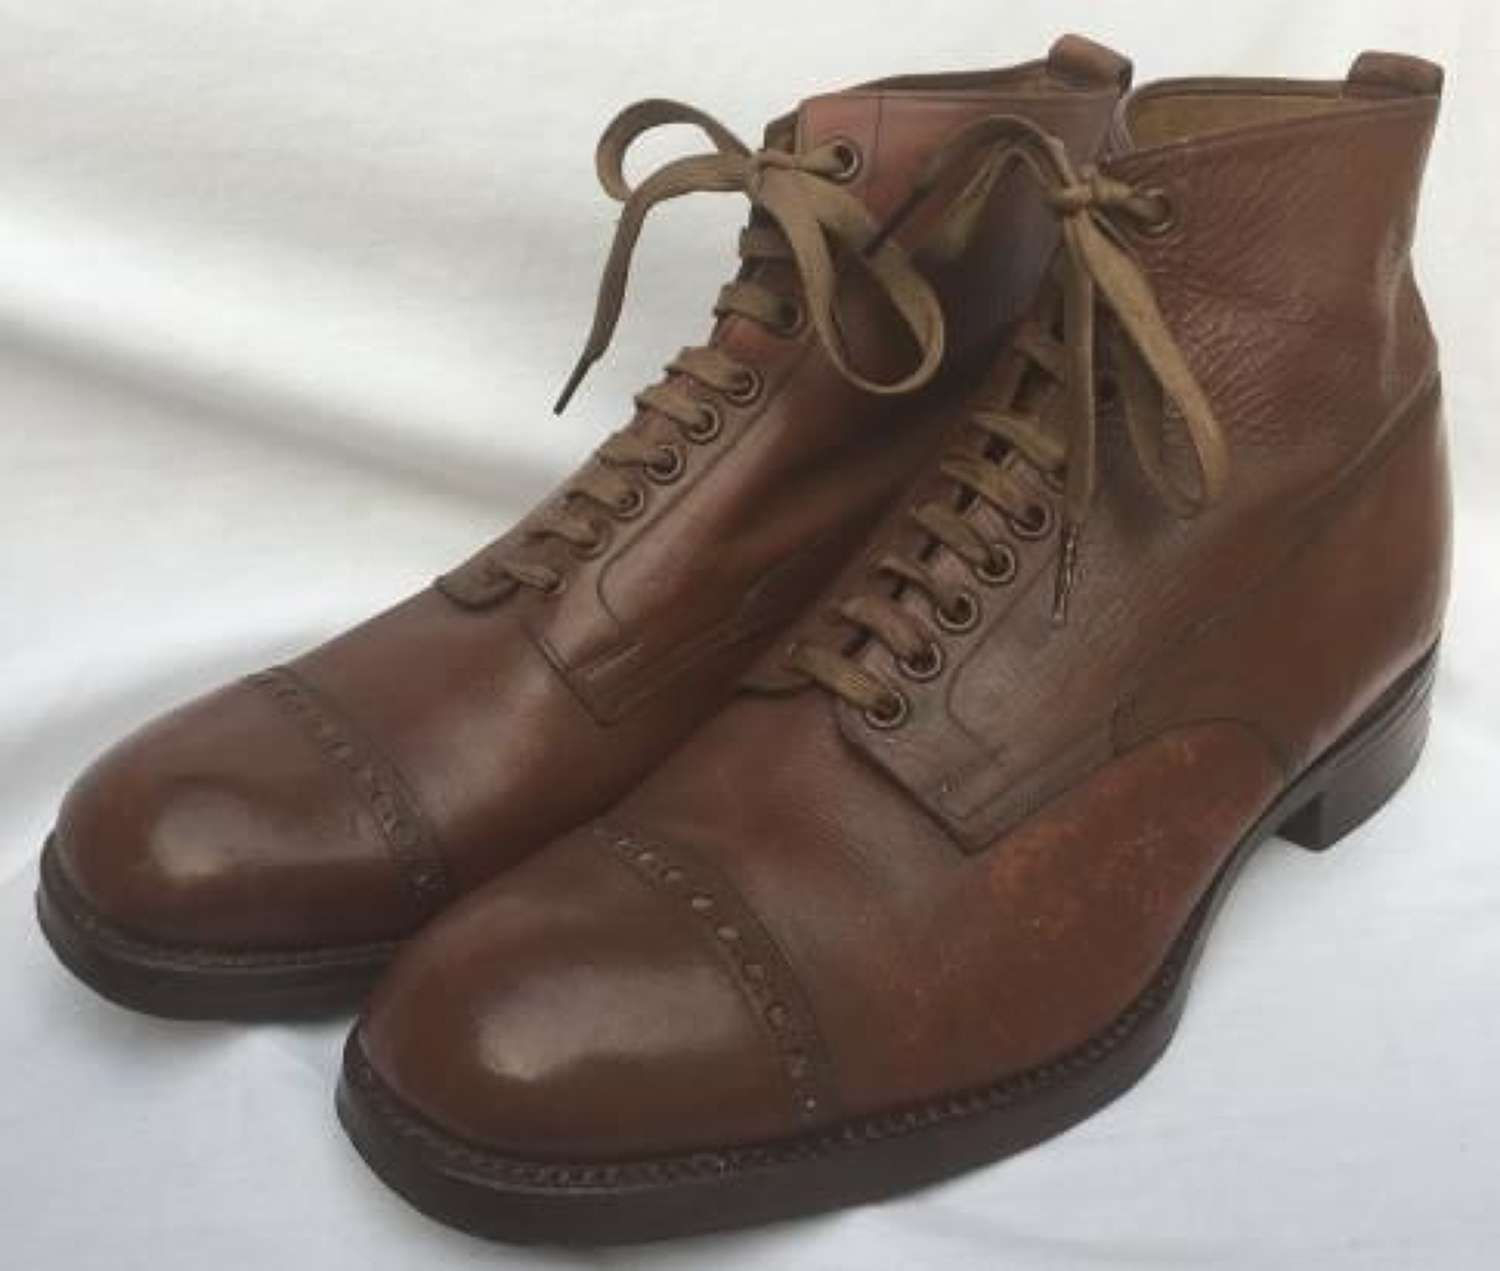 British Army Officers Brown Ankle Boots Size 10